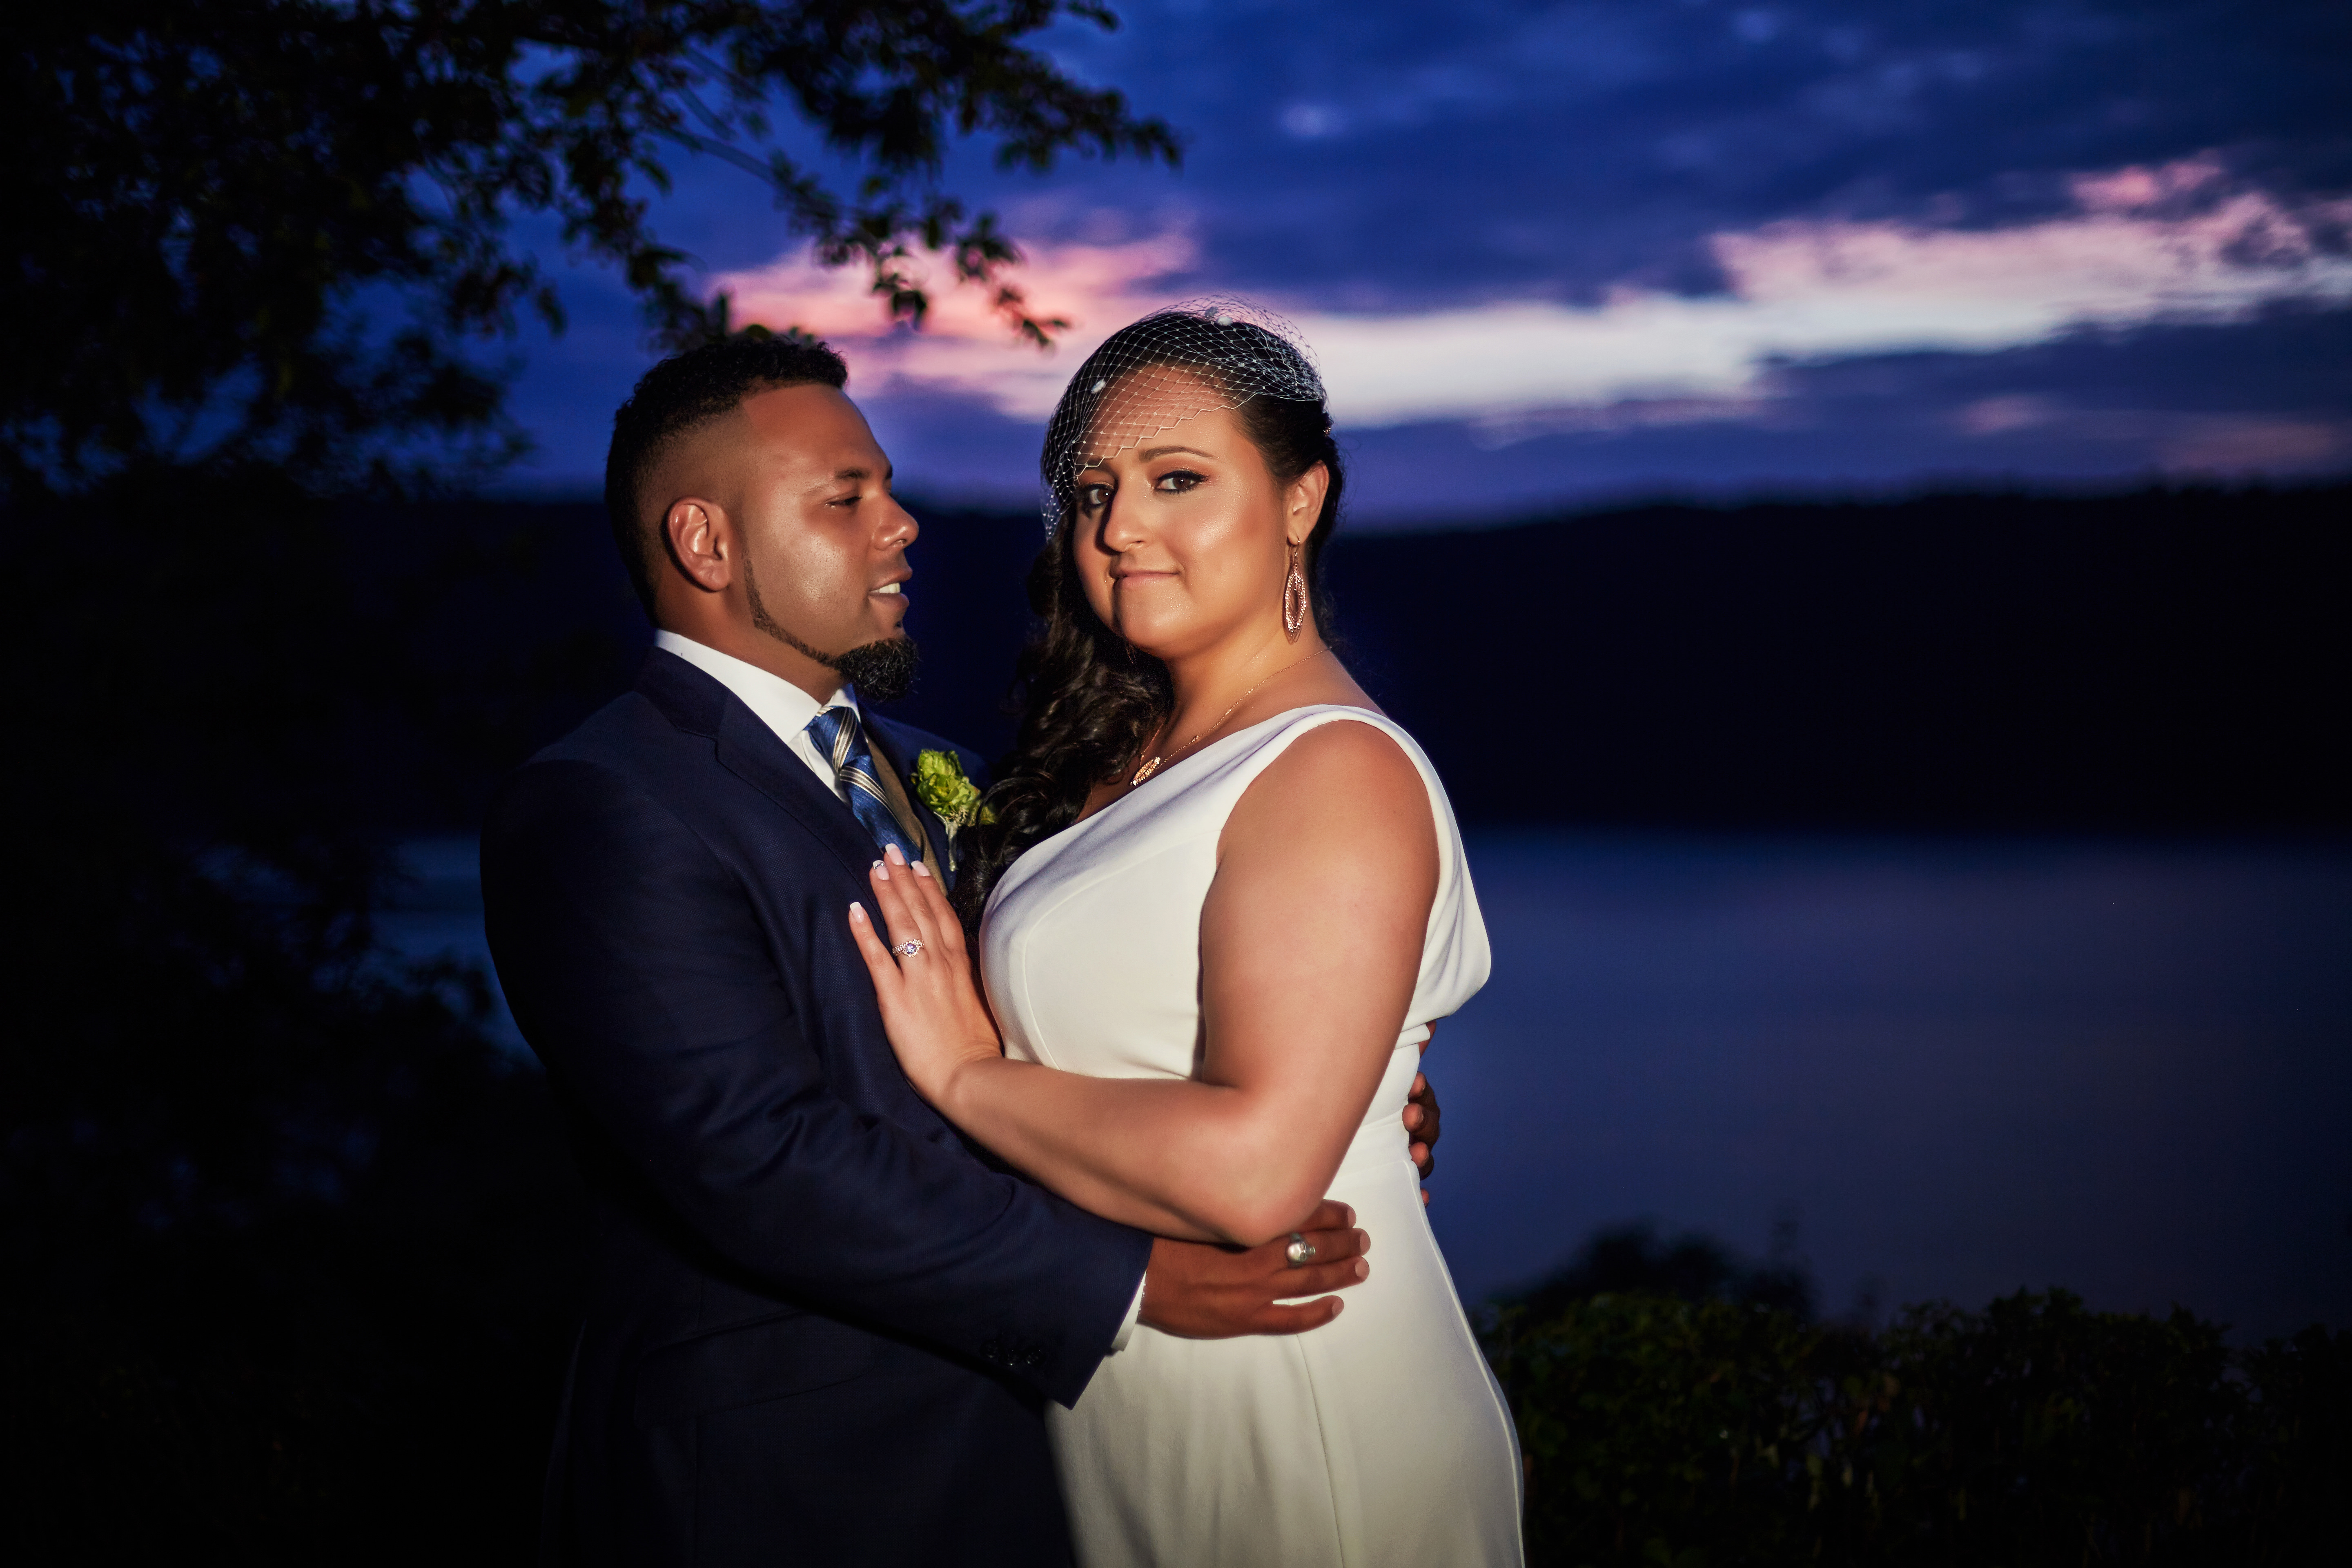 The Riverview Yonkers New York Wedding Photography